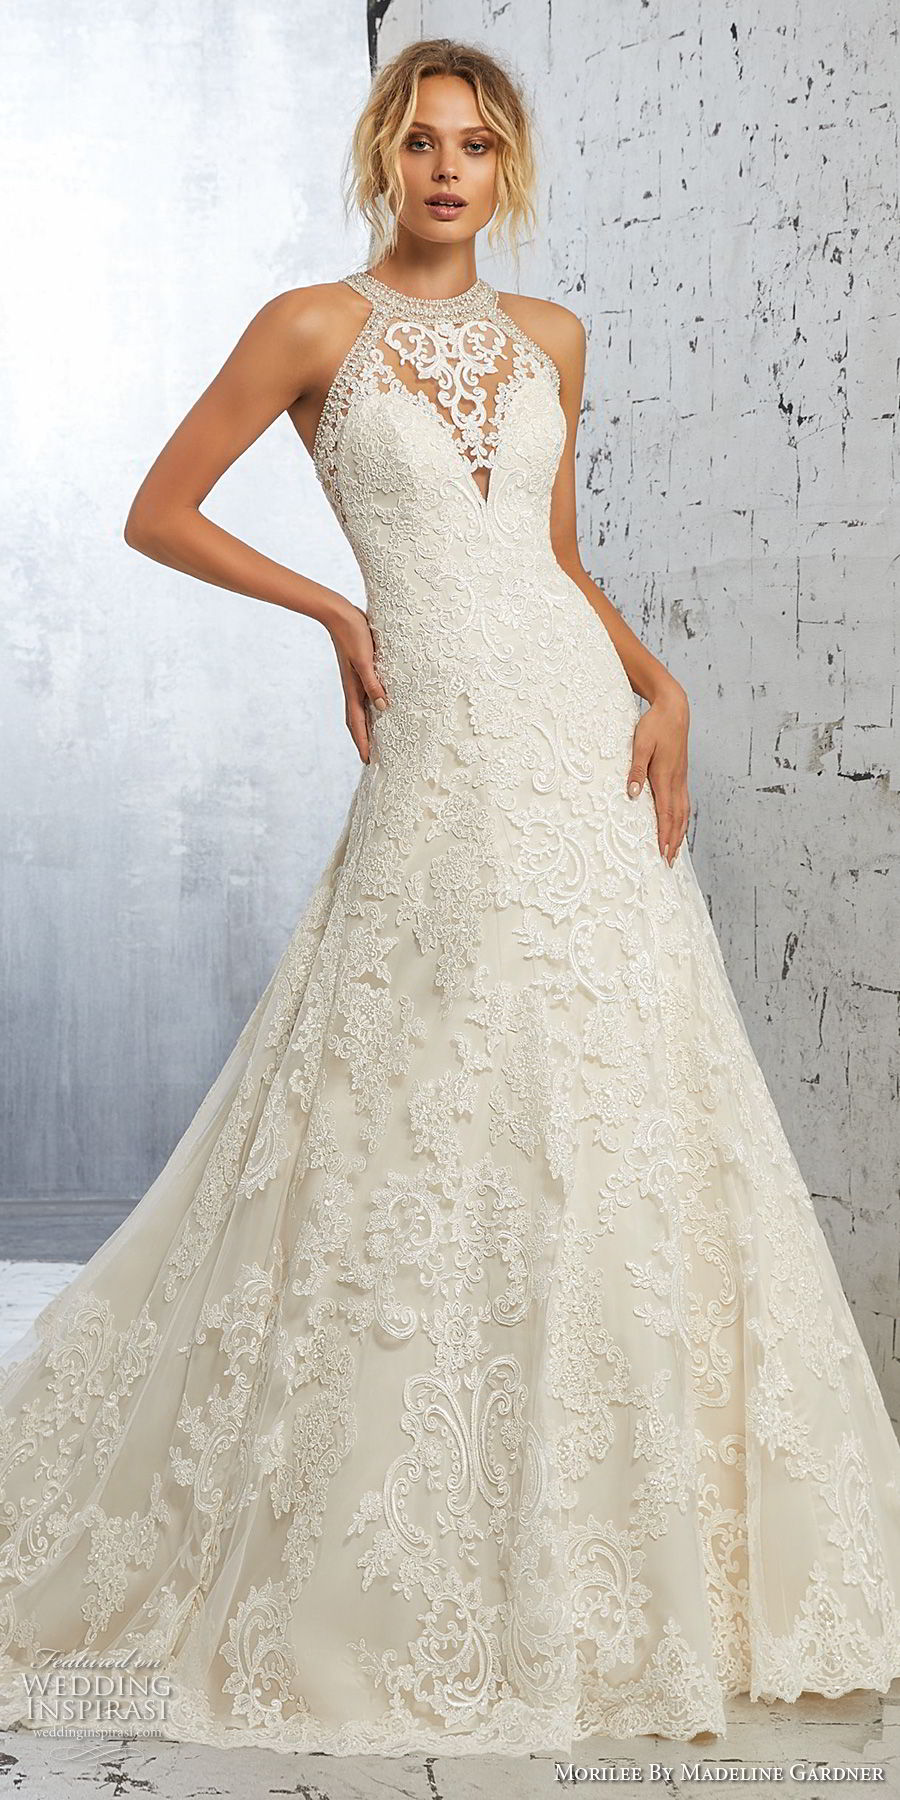 morilee 2018 bridal sleeveless halter jewel neck full embellishment elegant a line wedding dress sheer lace back long train (3) mv